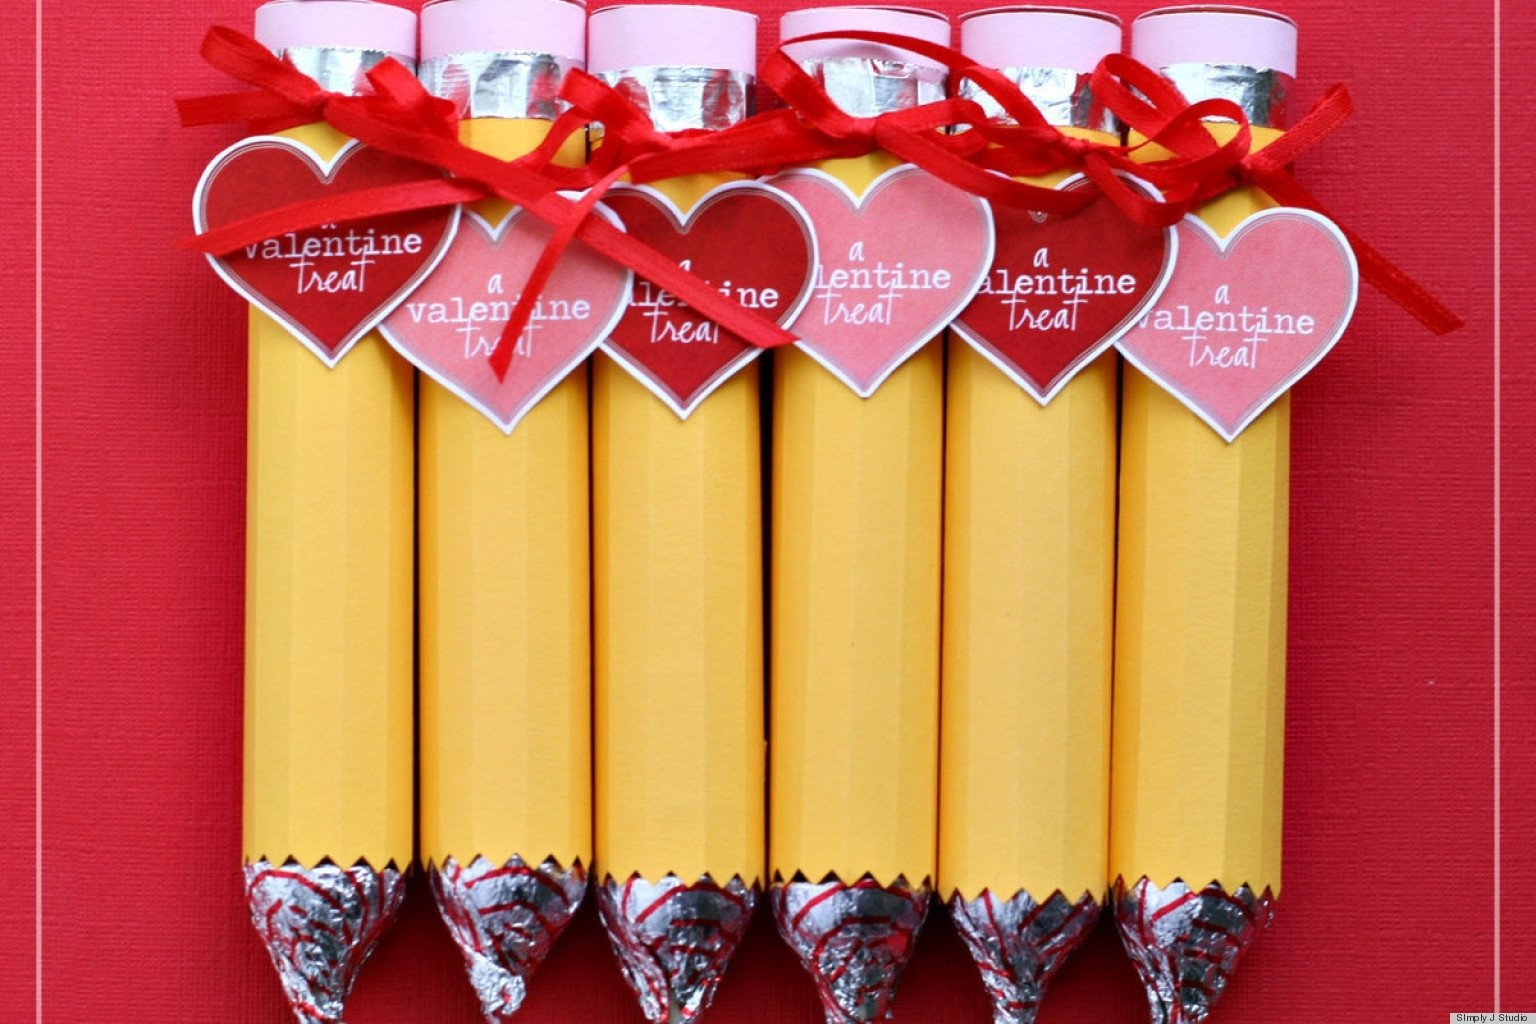 10 Amazing Crafts For Valentines Day Ideas valentine day crafts even grown ups love photos dma homes 66739 2020